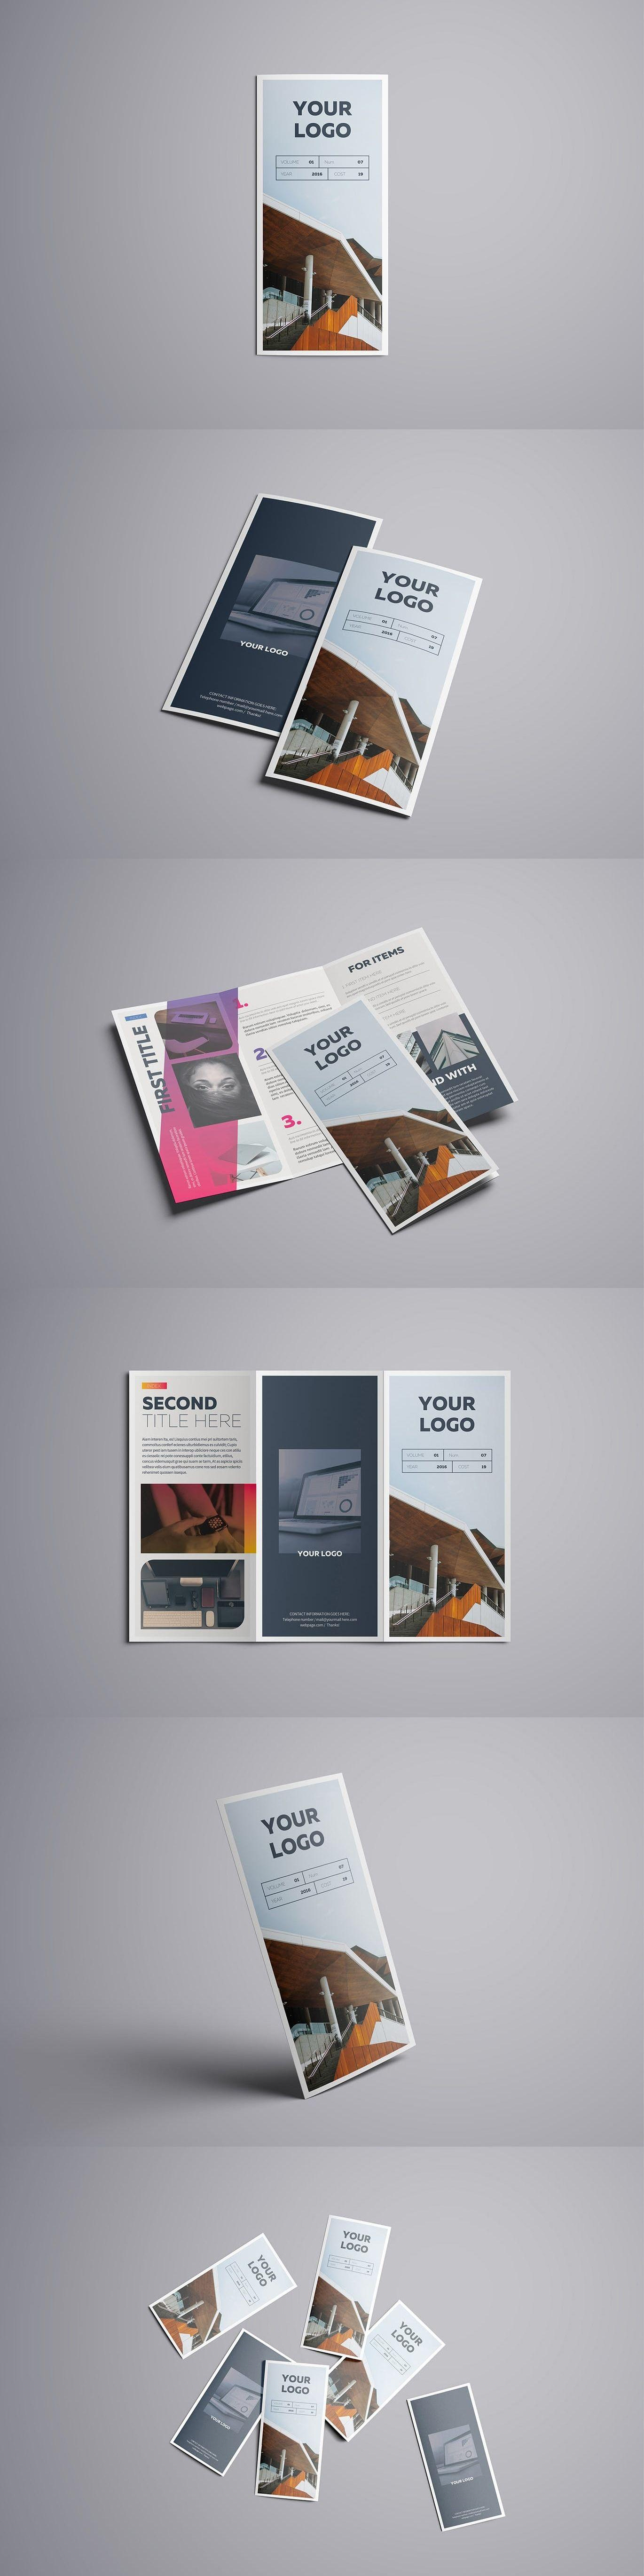 Adobe Illustrator A4 Brochure Templates